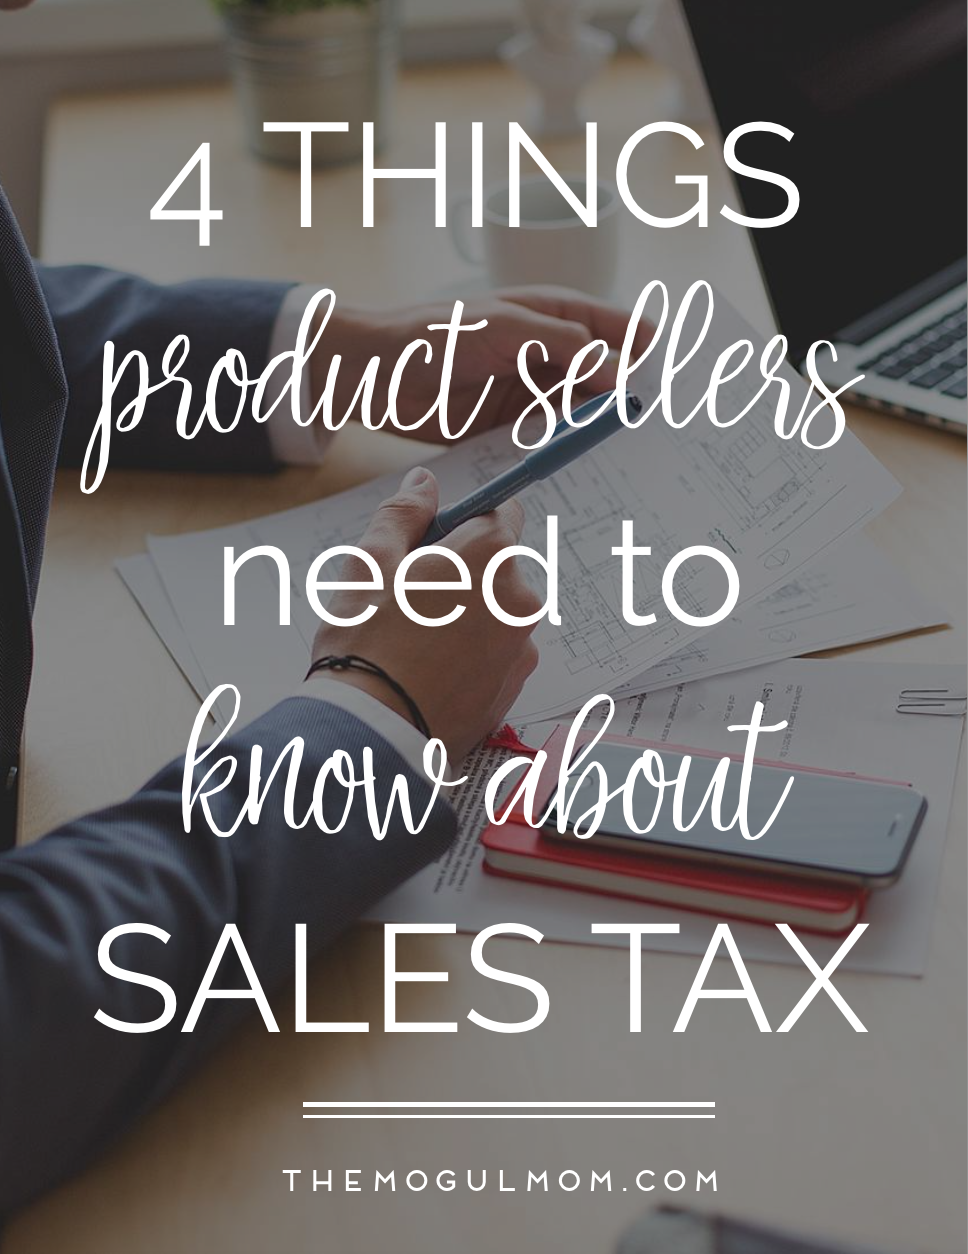 4 Sales Tax Myths and Legends, Demystified for Product Sellers